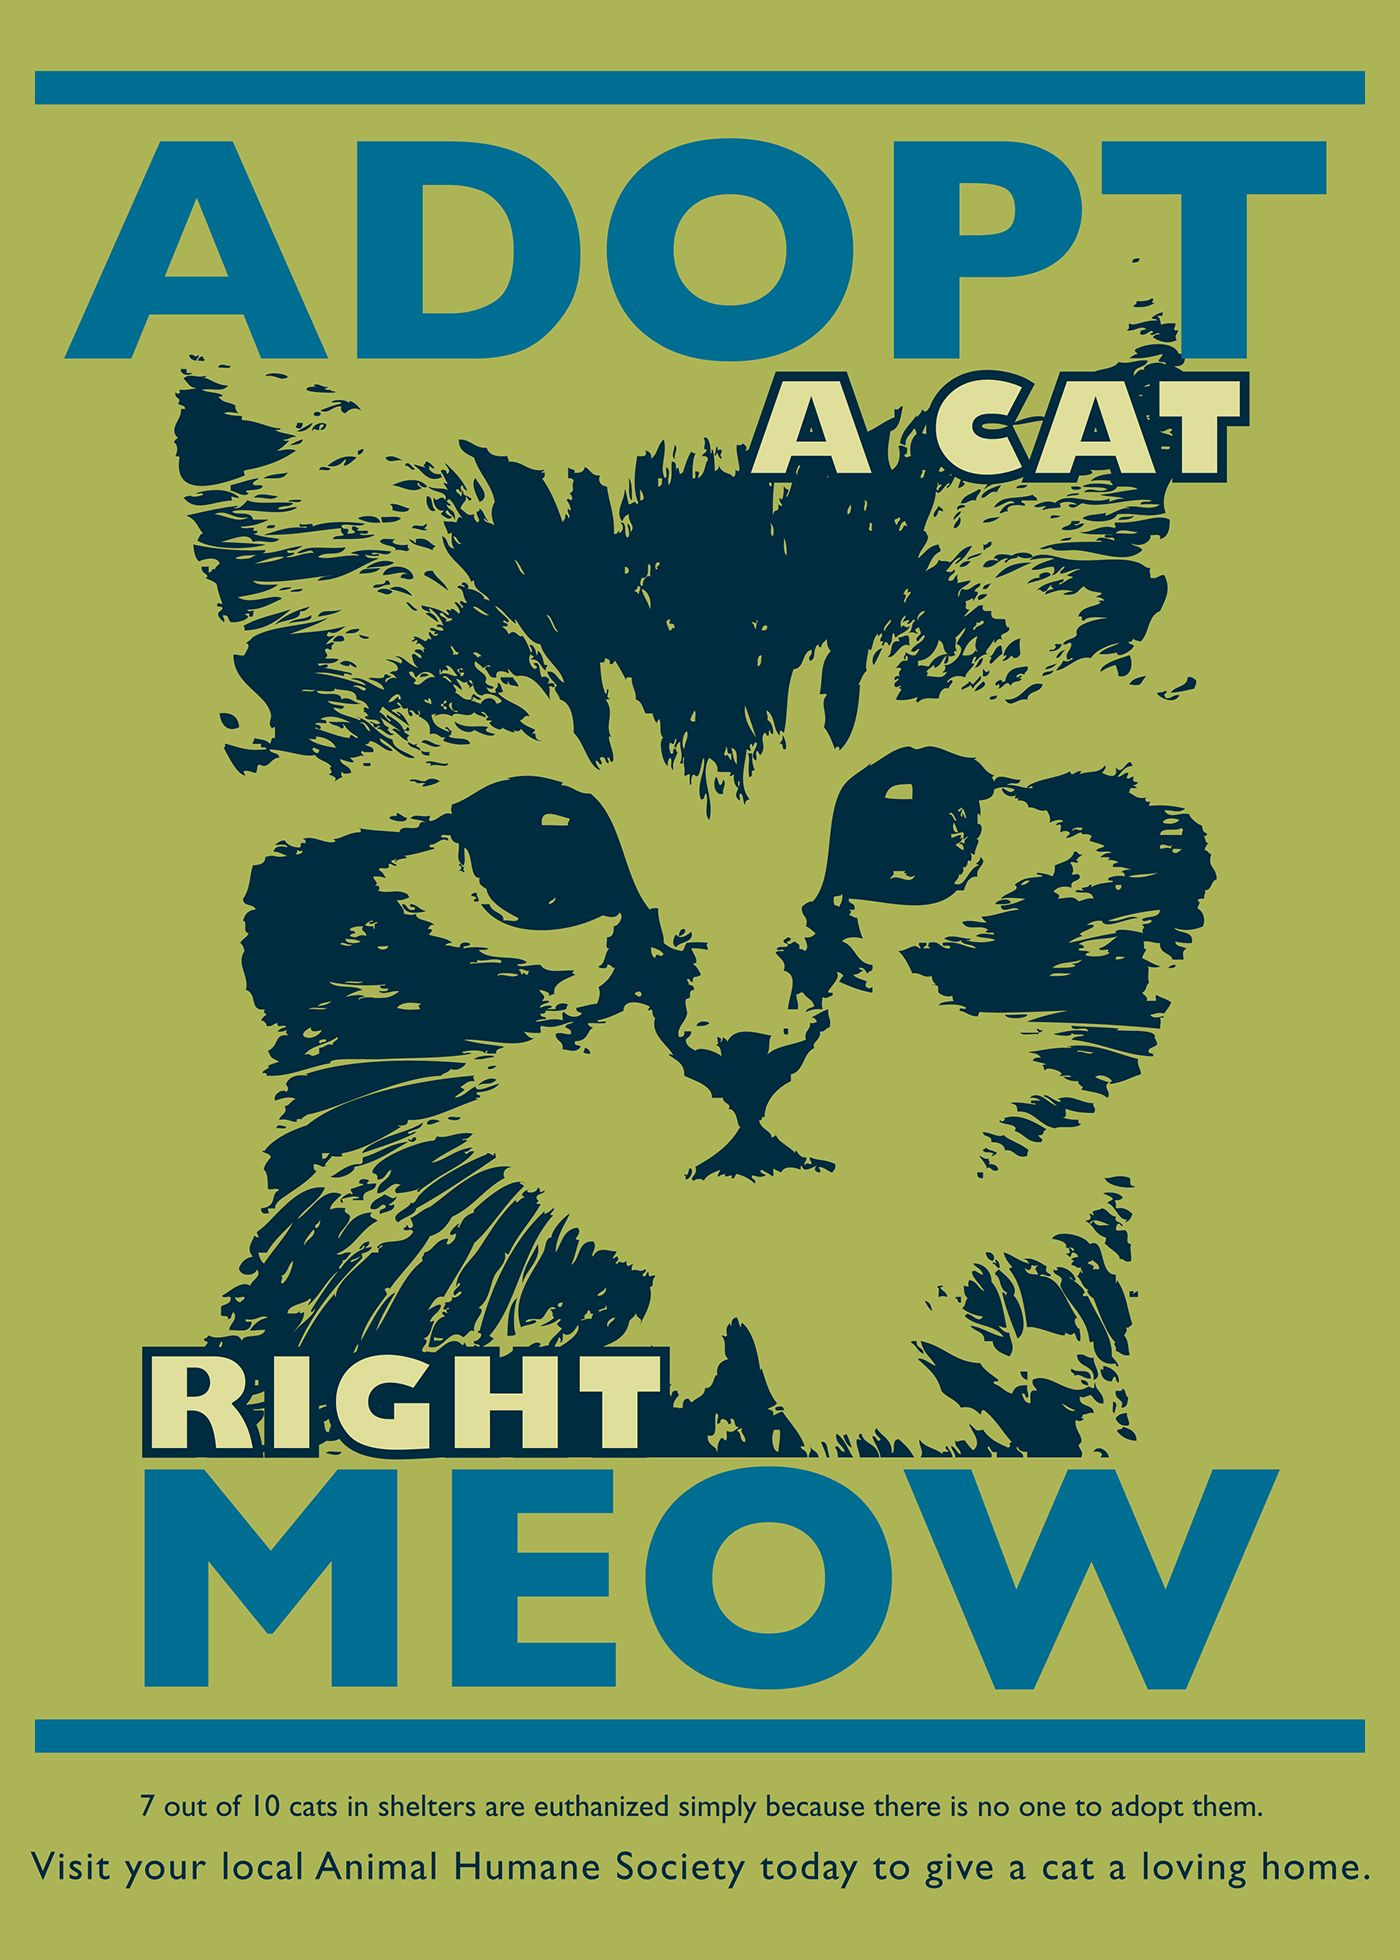 Public Service Announcement Highlighting Cat Adoption Cats Animal Shelter Humane Society